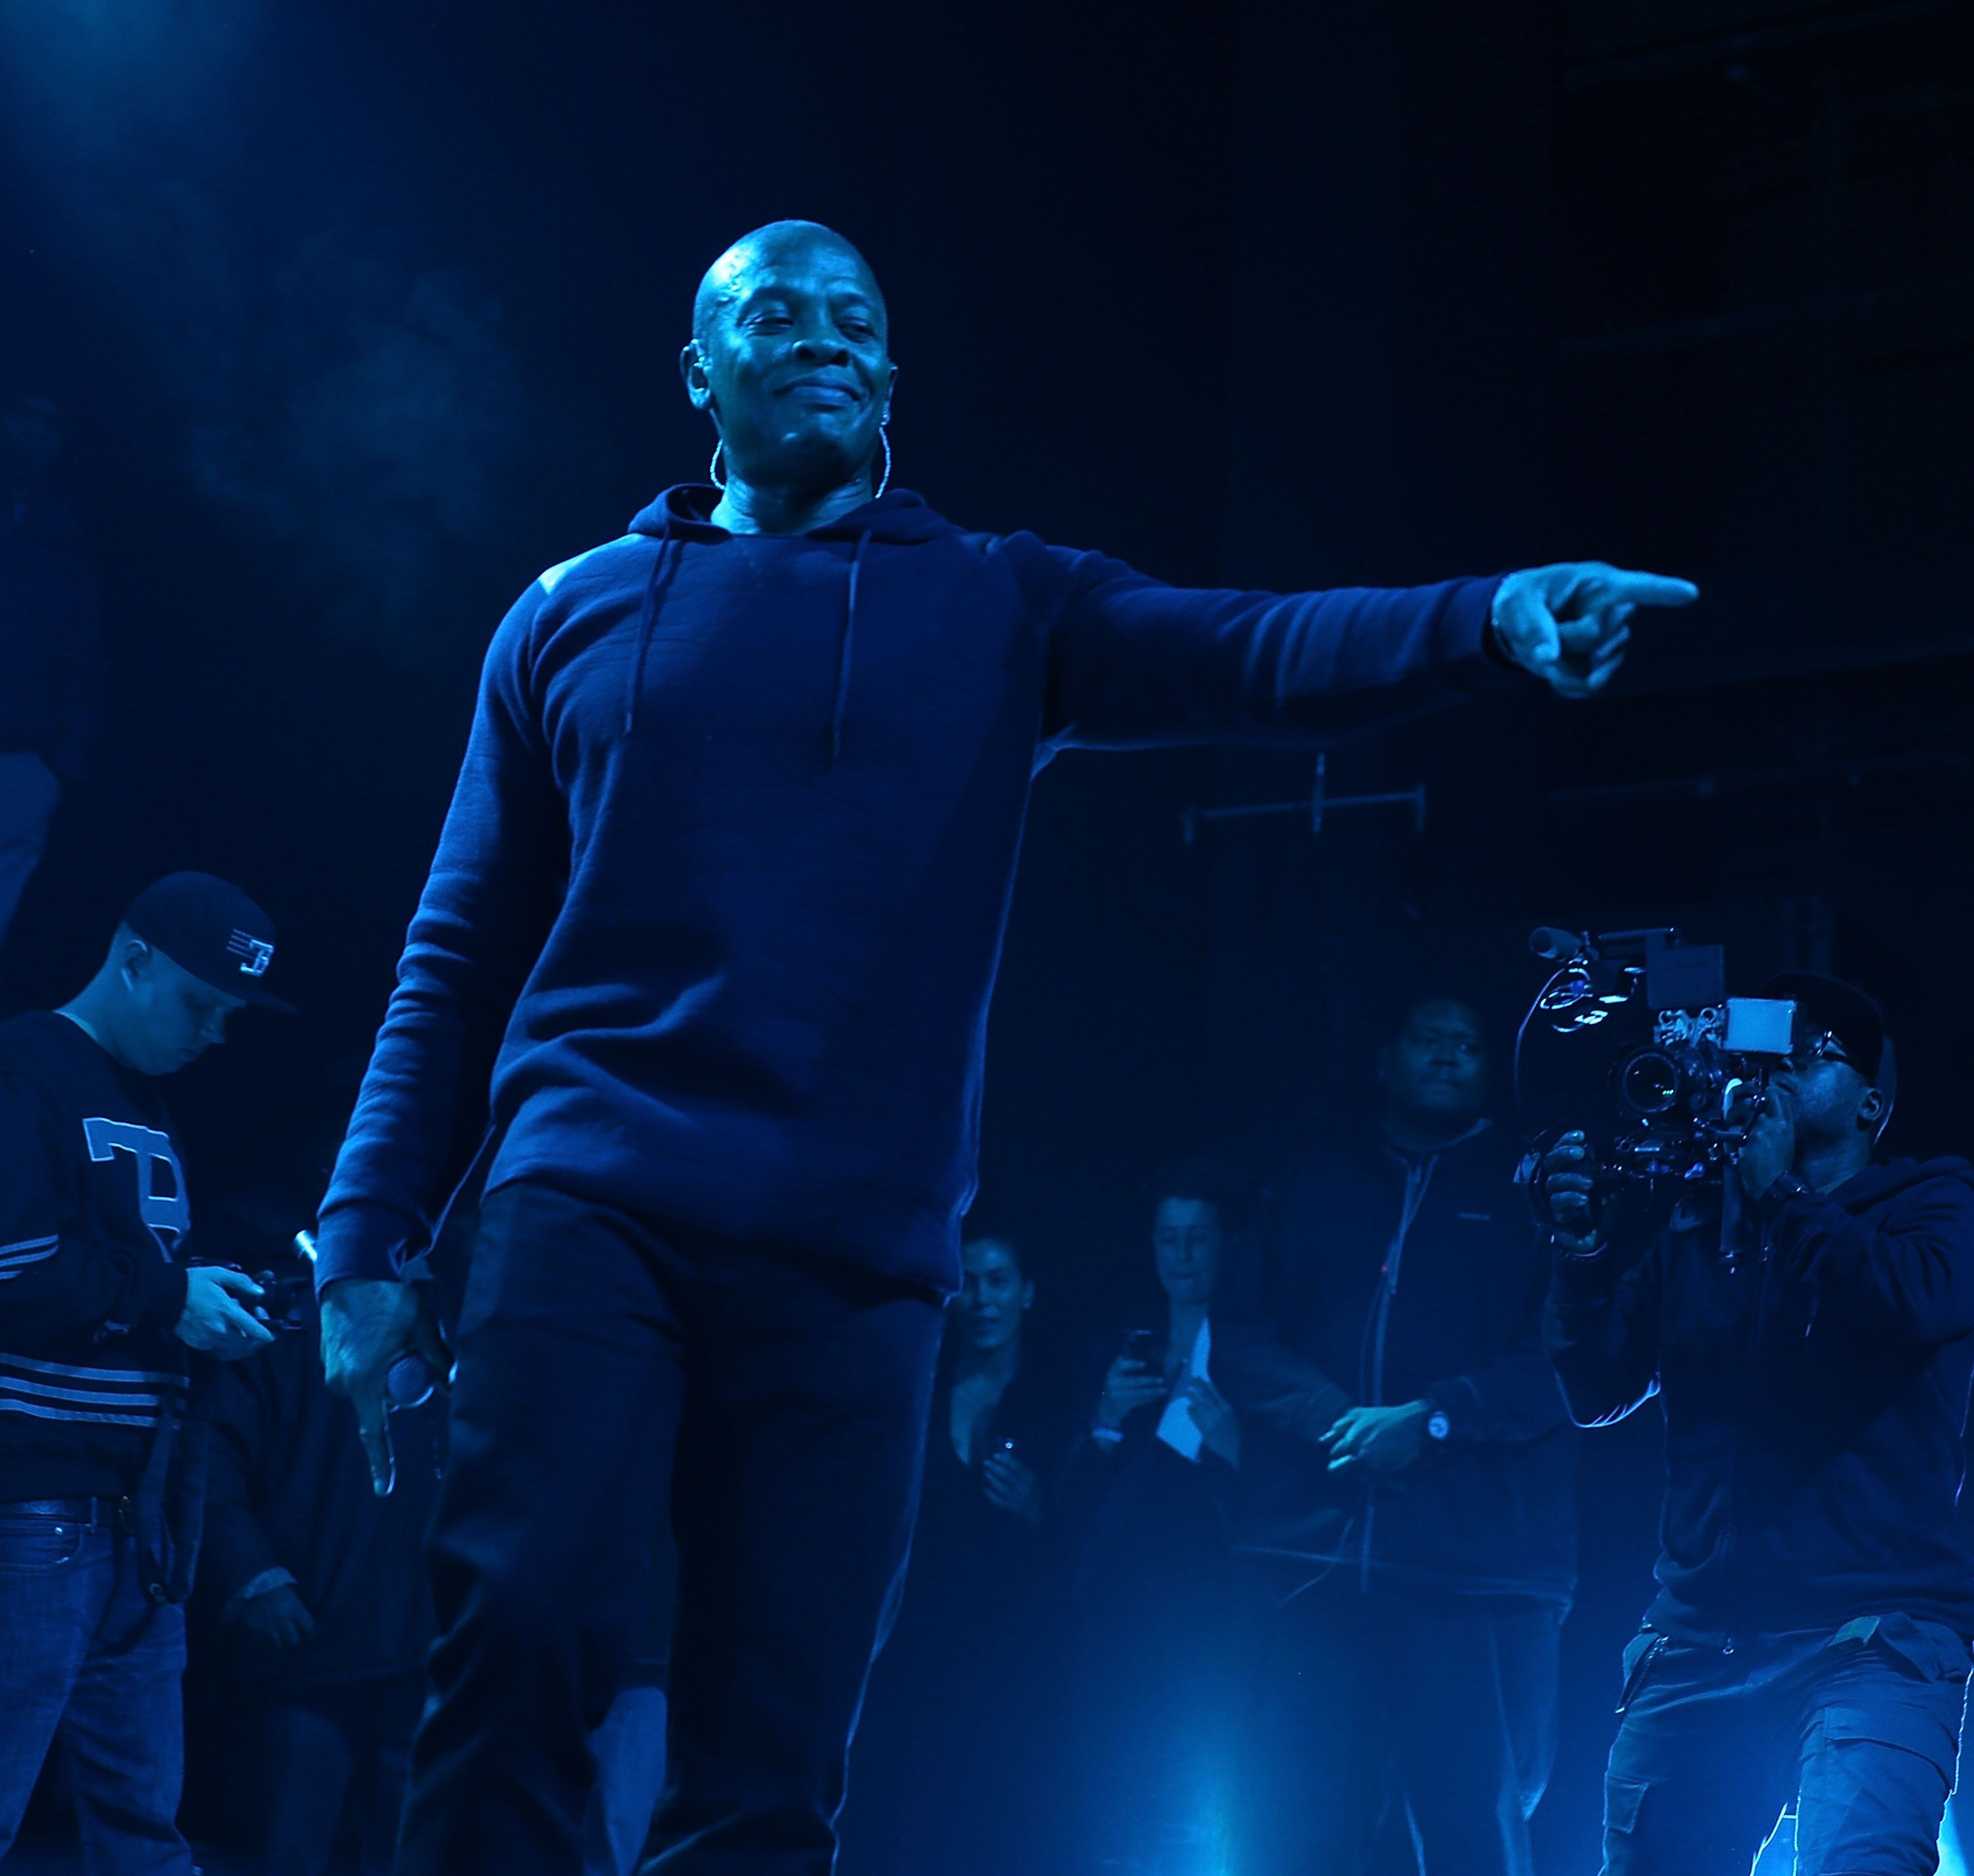 NEW YORK, NY - FEBRUARY 12:  Dr. Dre at Madison Square Garden on February 12, 2015 in New York City.  (Photo by Shareif Ziyadat/WireImage)